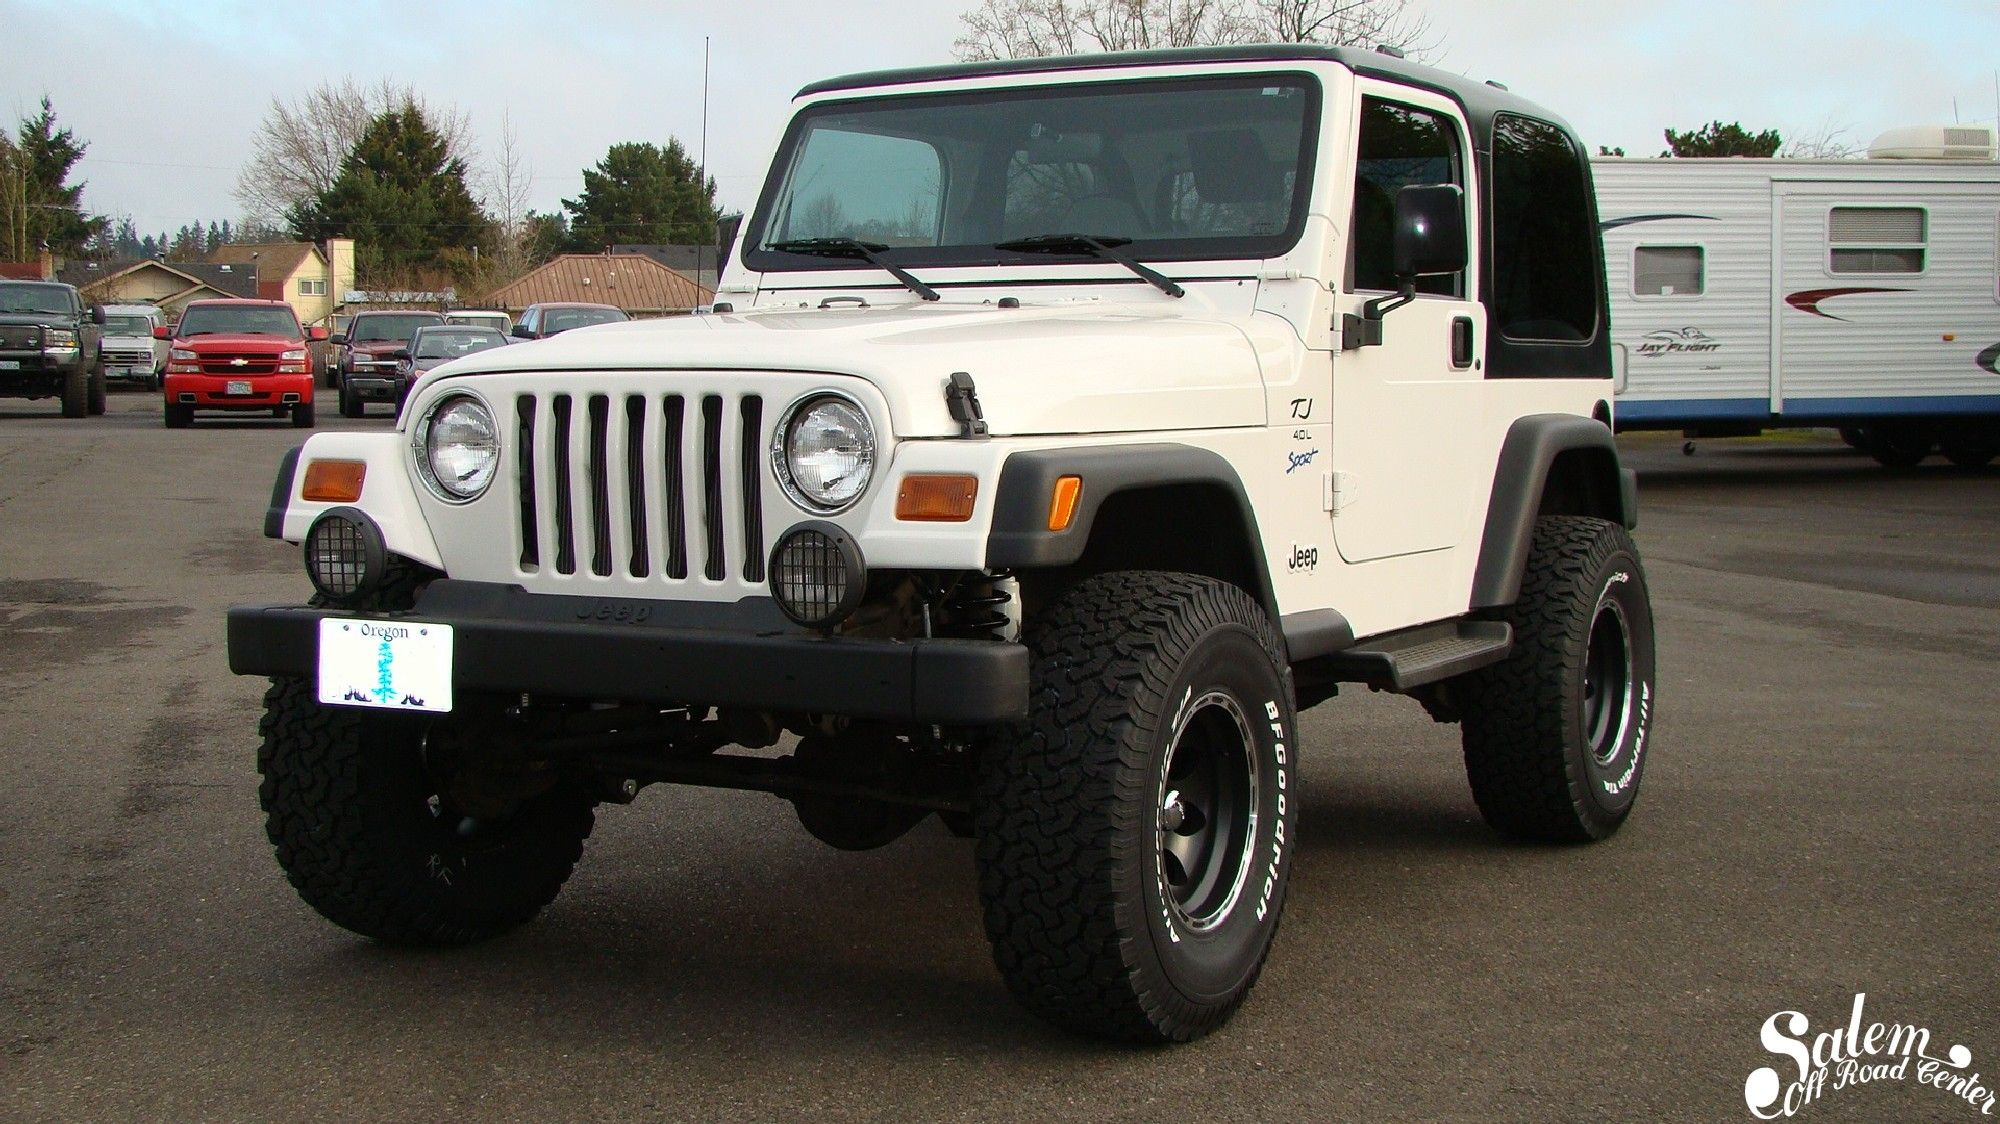 This 1997 jeep wrangler is outfitted with a bds 3 lift kit including new front